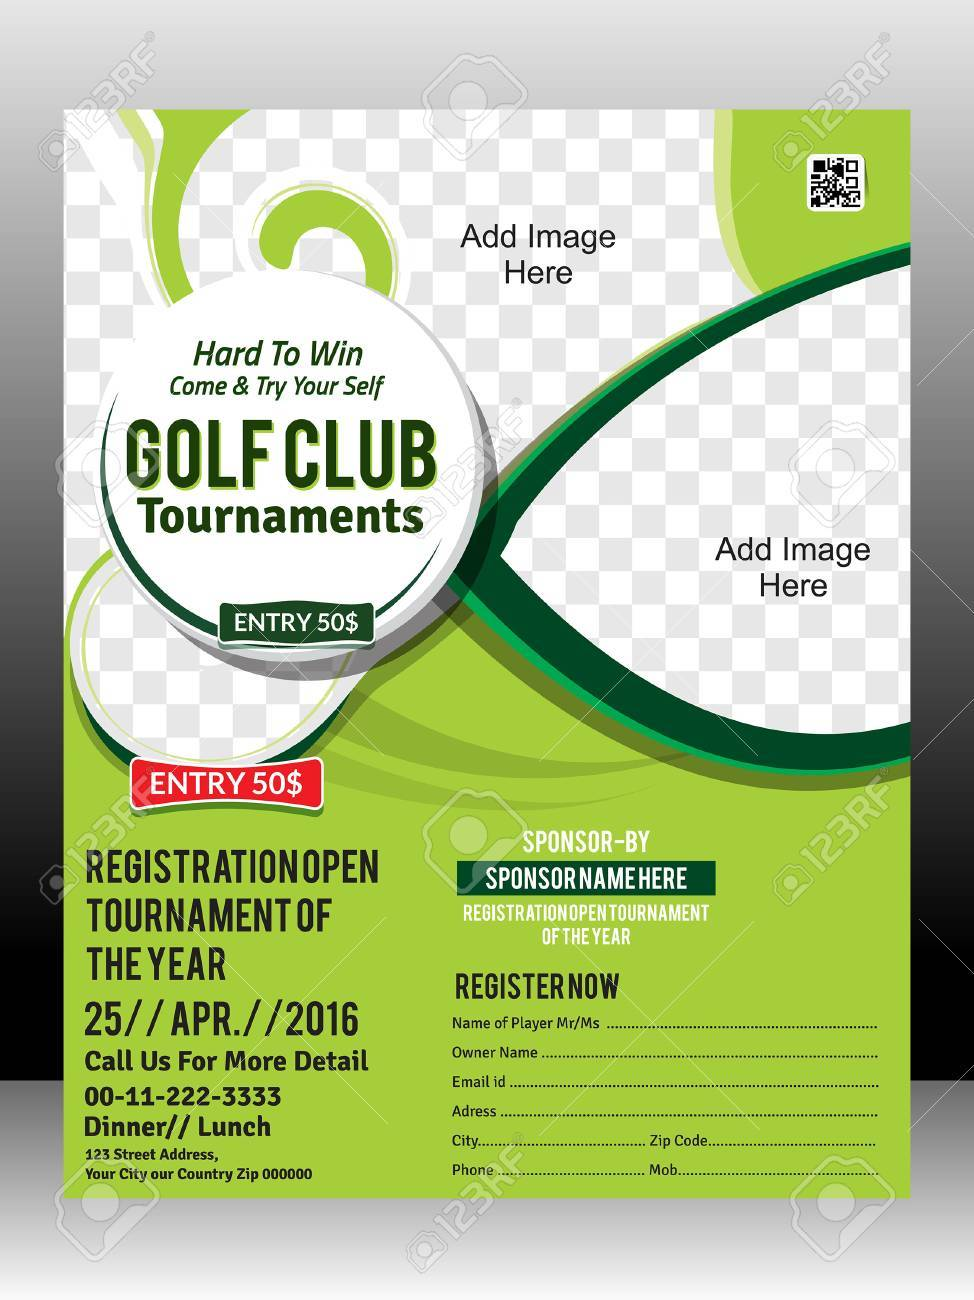 golf tournament flyer template design illustration royalty free